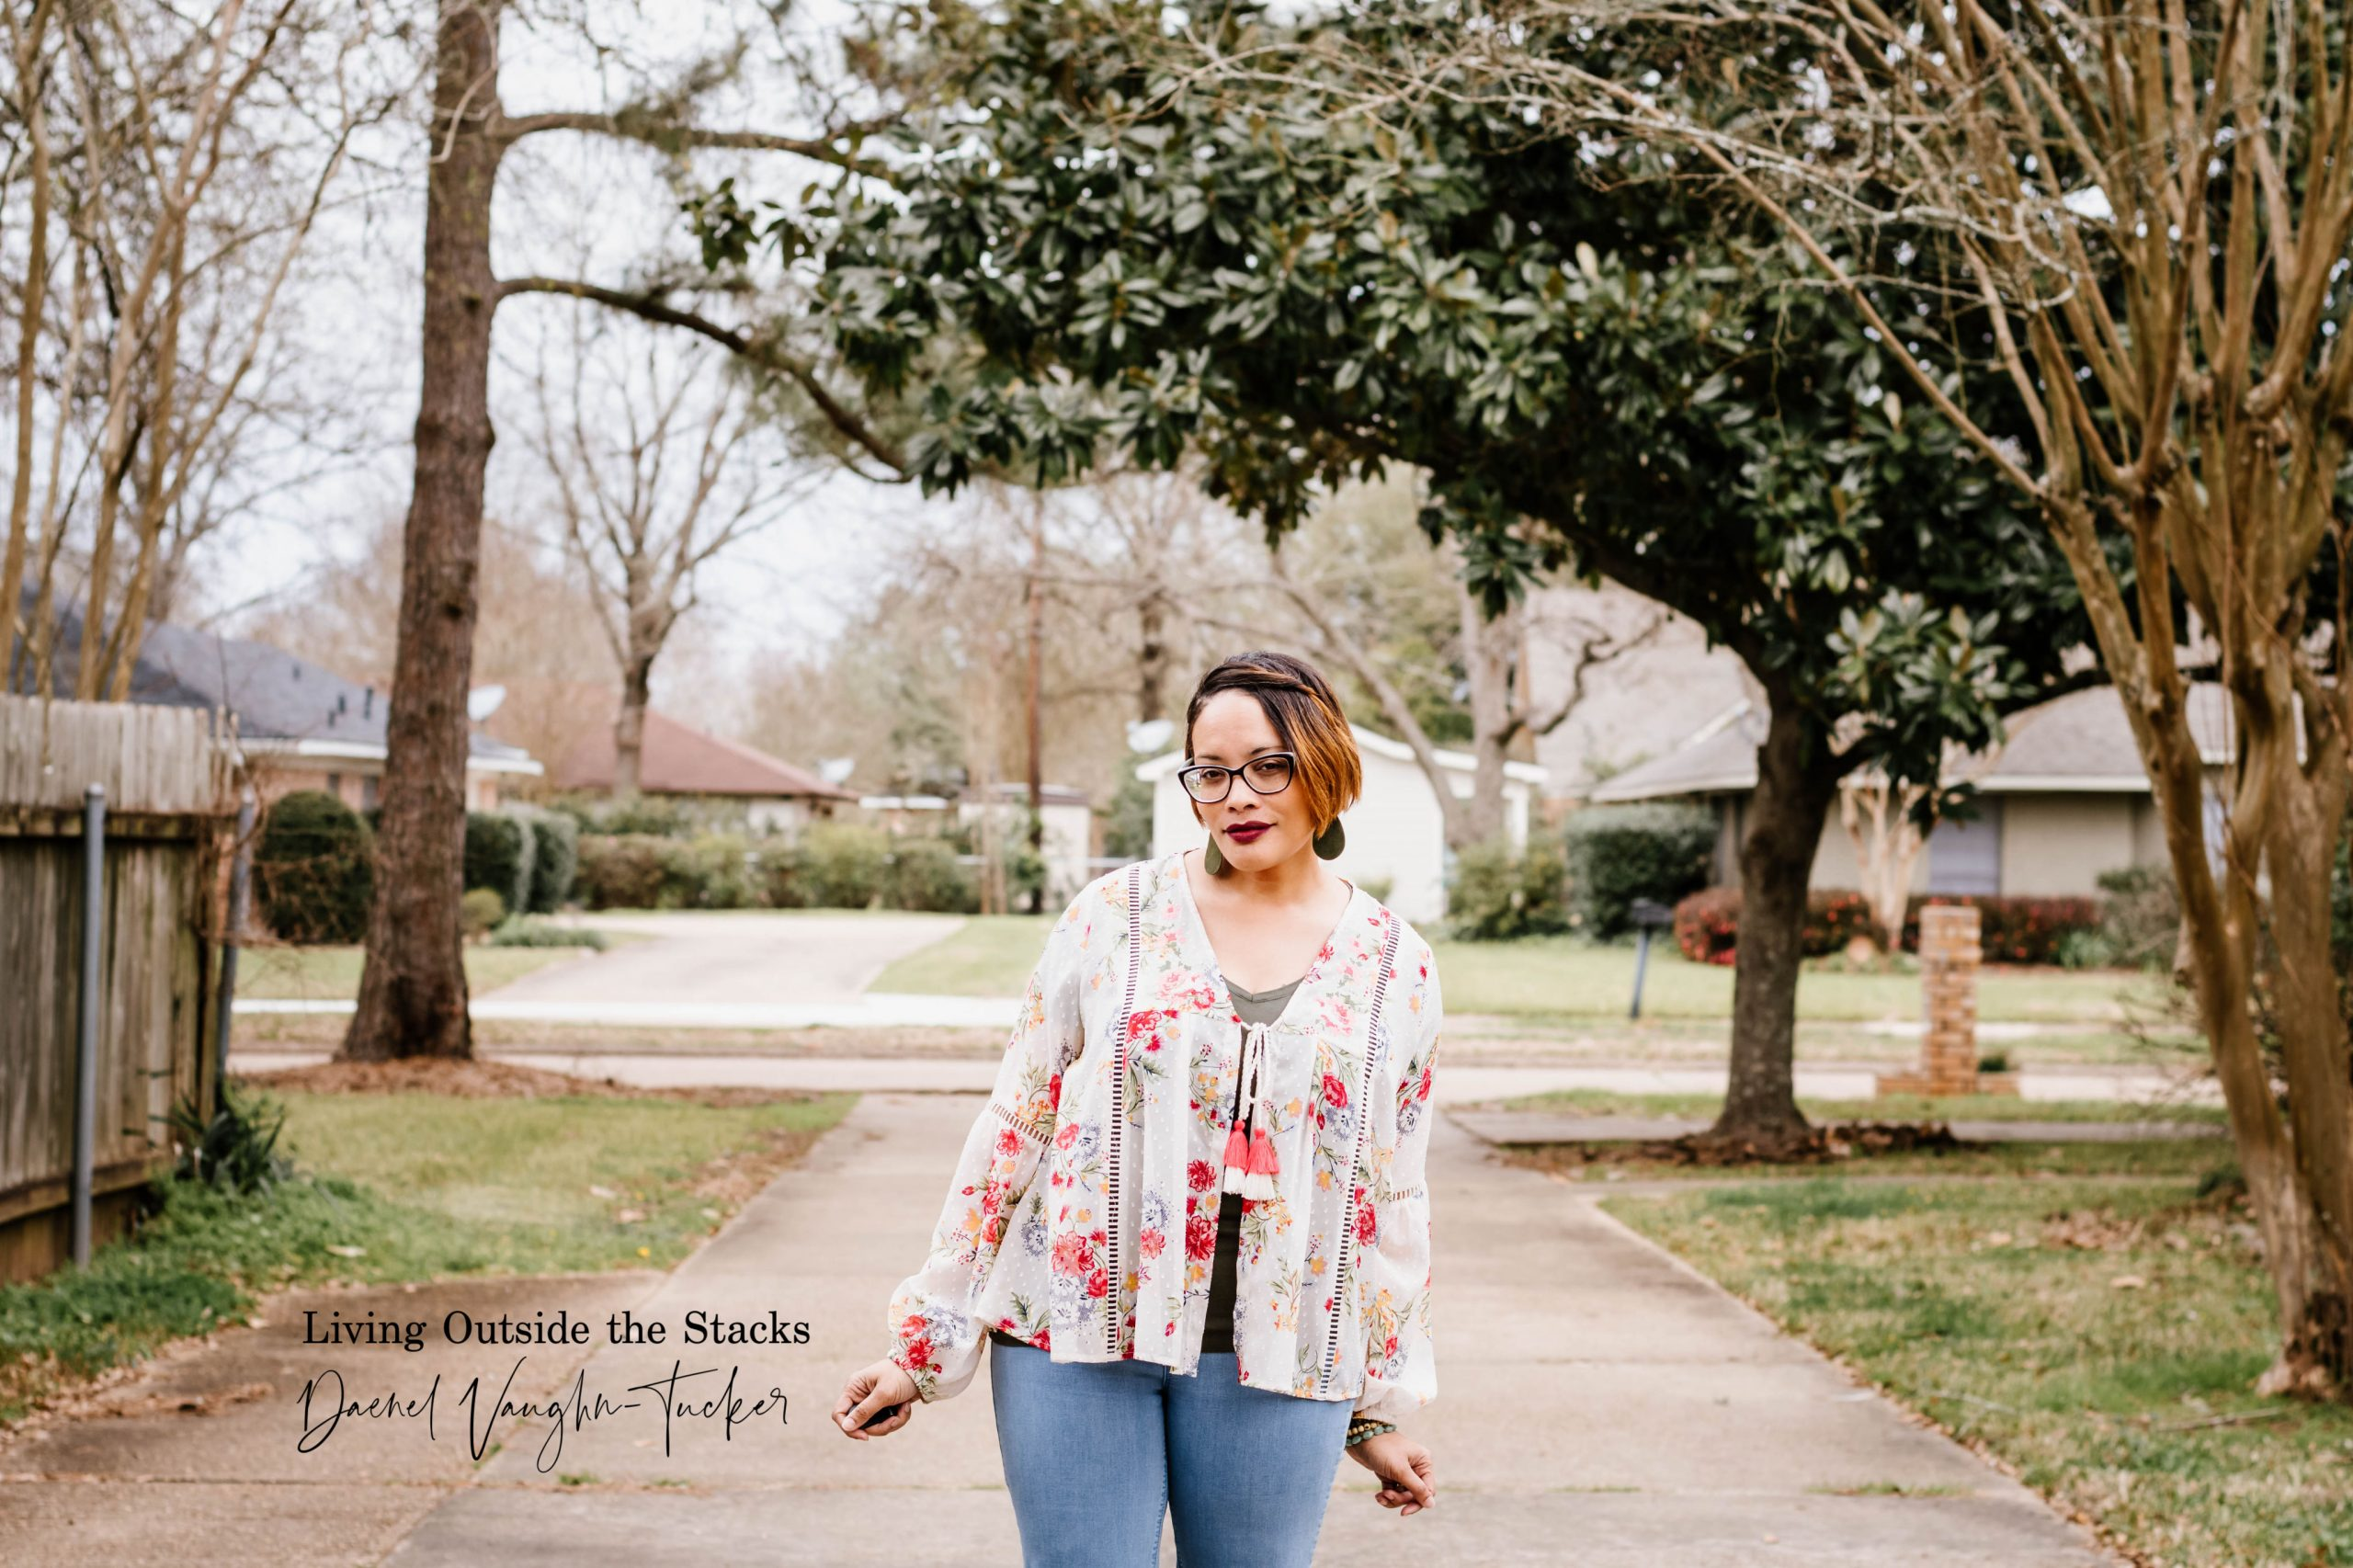 Embroidered Jacket Olive Tee Jeans and Clogs {living outside the stacks}